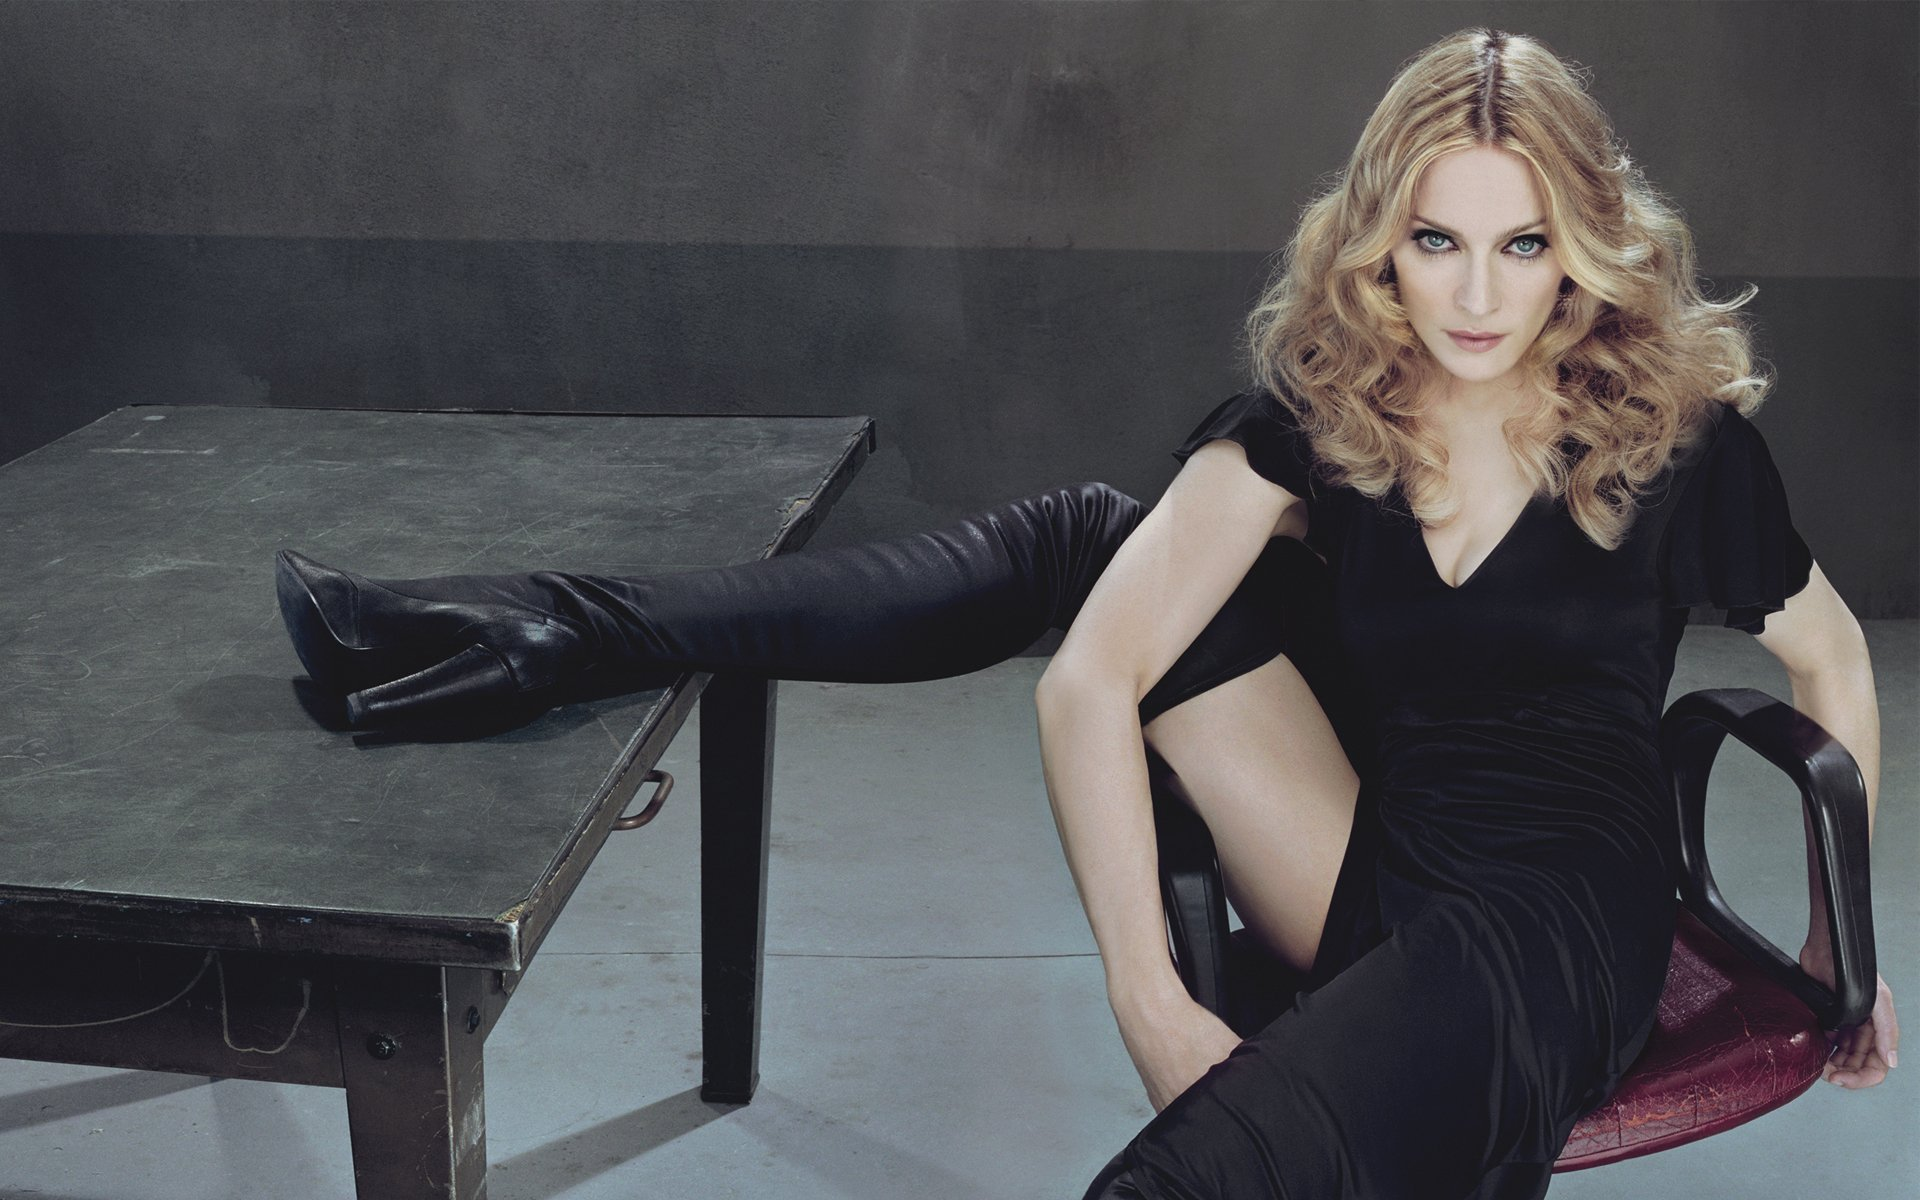 Madonna hd wallpaper background image 1920x1200 id - Madonna hd images ...